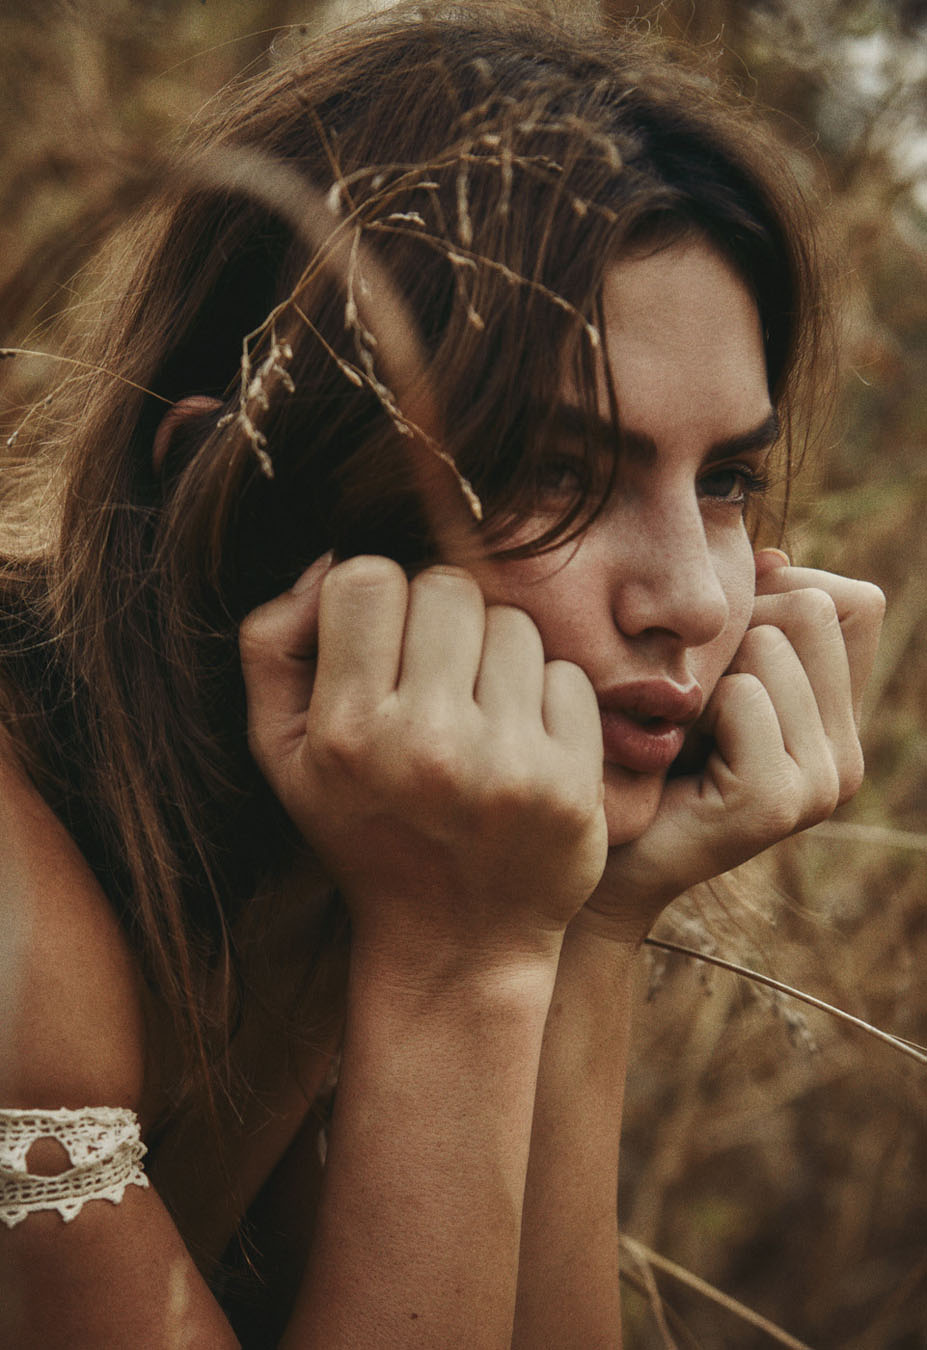 Paloma book / Alyssa Miller by Harper Smith